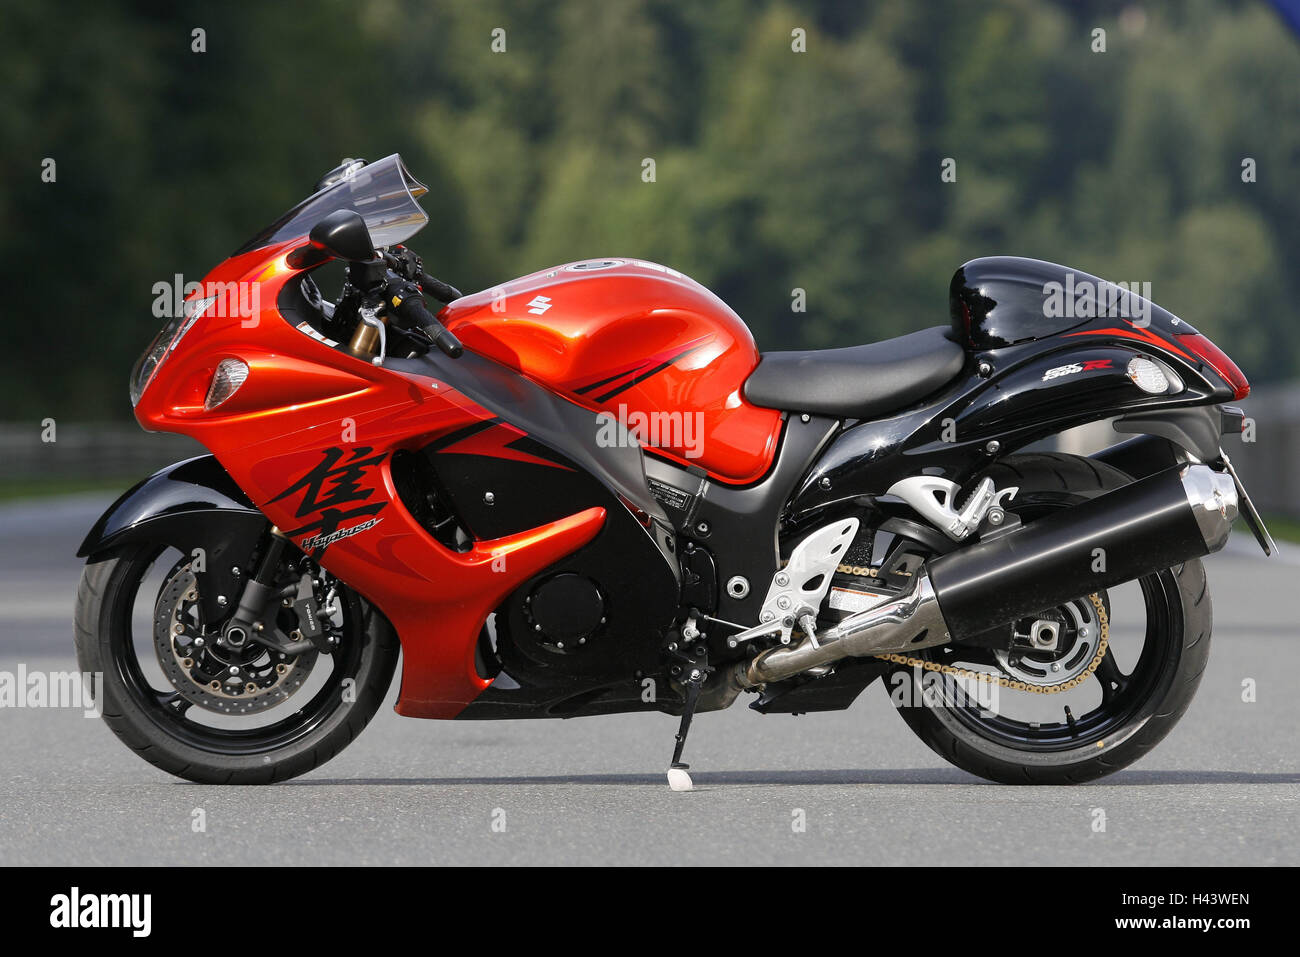 Speed Bike, Suzuki Hayabusa, GSX R 1300, Red, Preview, Street